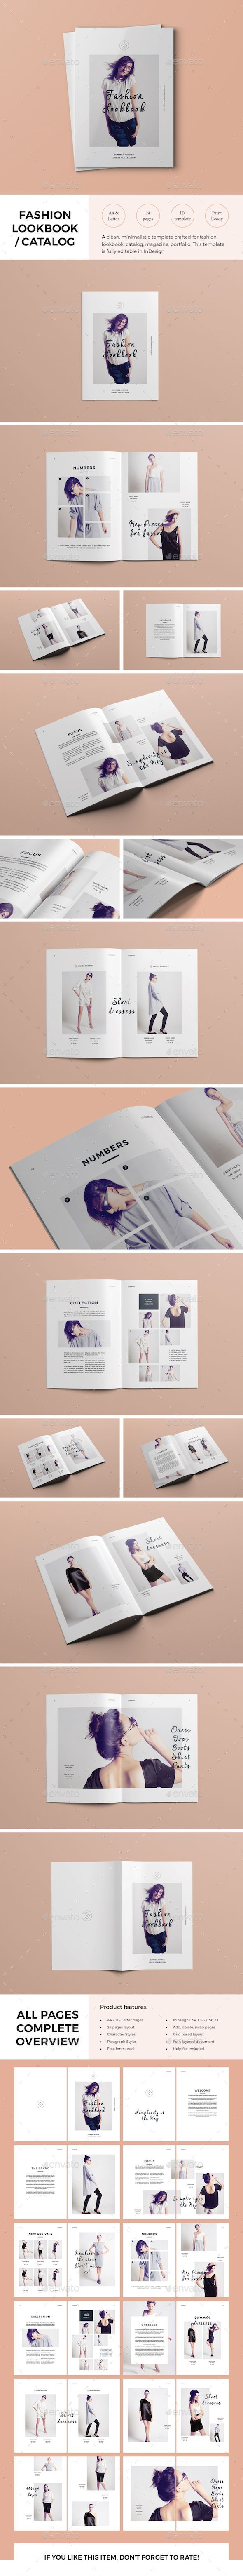 Fashion Lookbook / Catalog Template Template InDesign INDD #design Download: graphicriver.net/...